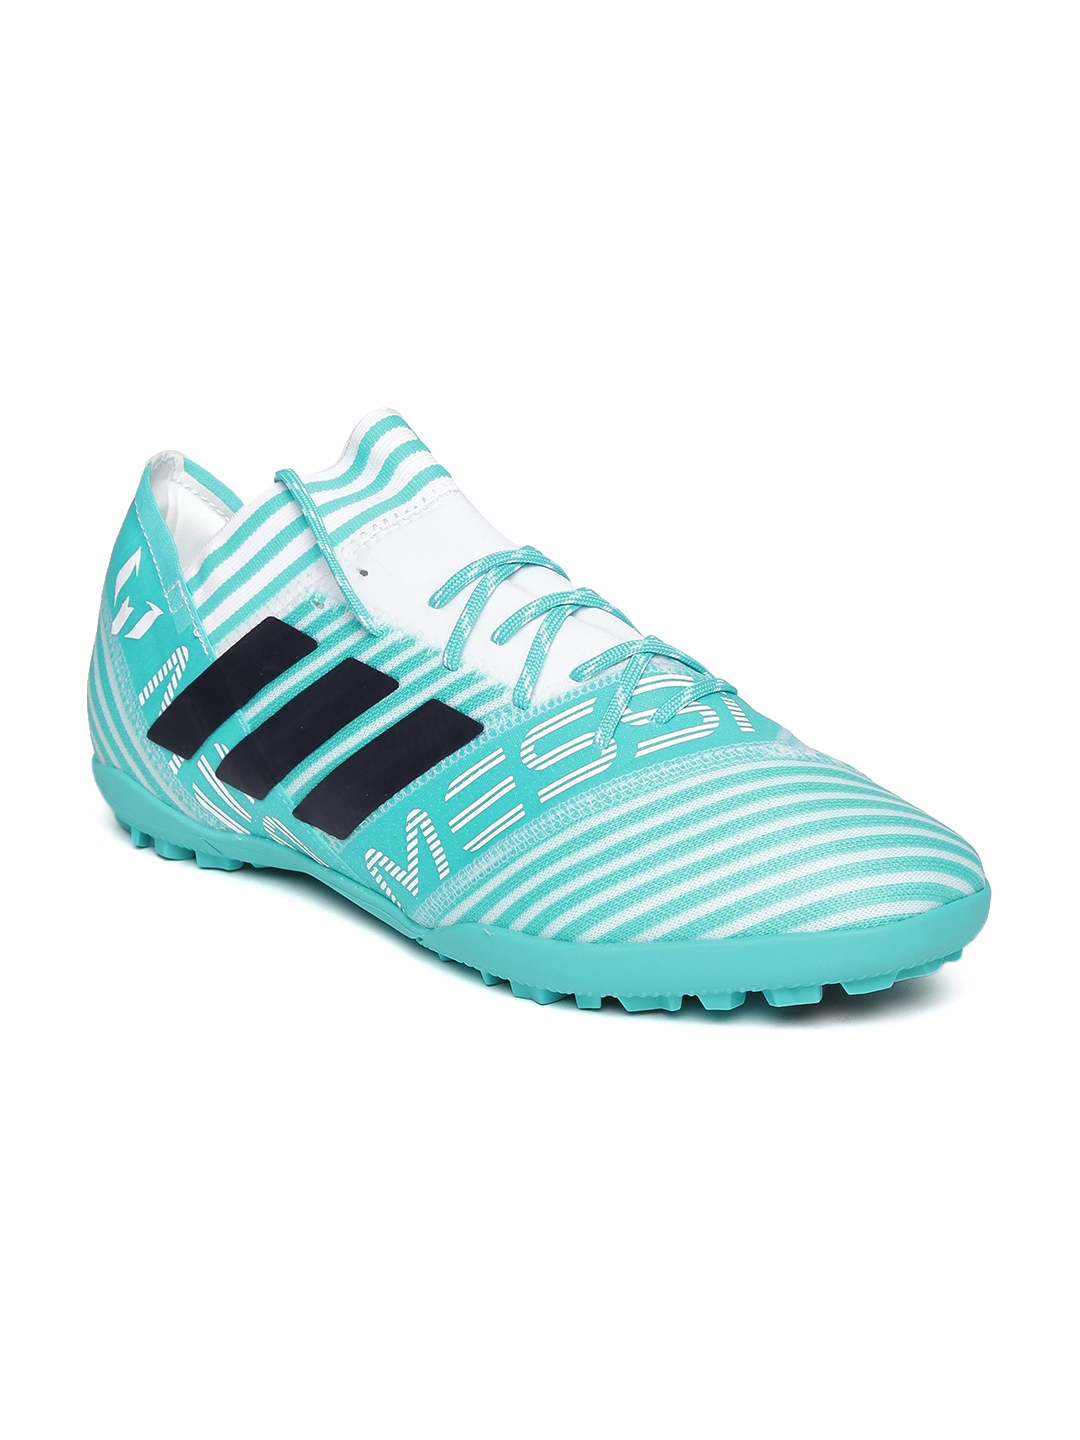 7459d27d0575 ADIDAS Men Blue   White Nemeziz Messi Tango 17.3 Turf Striped Football Shoes